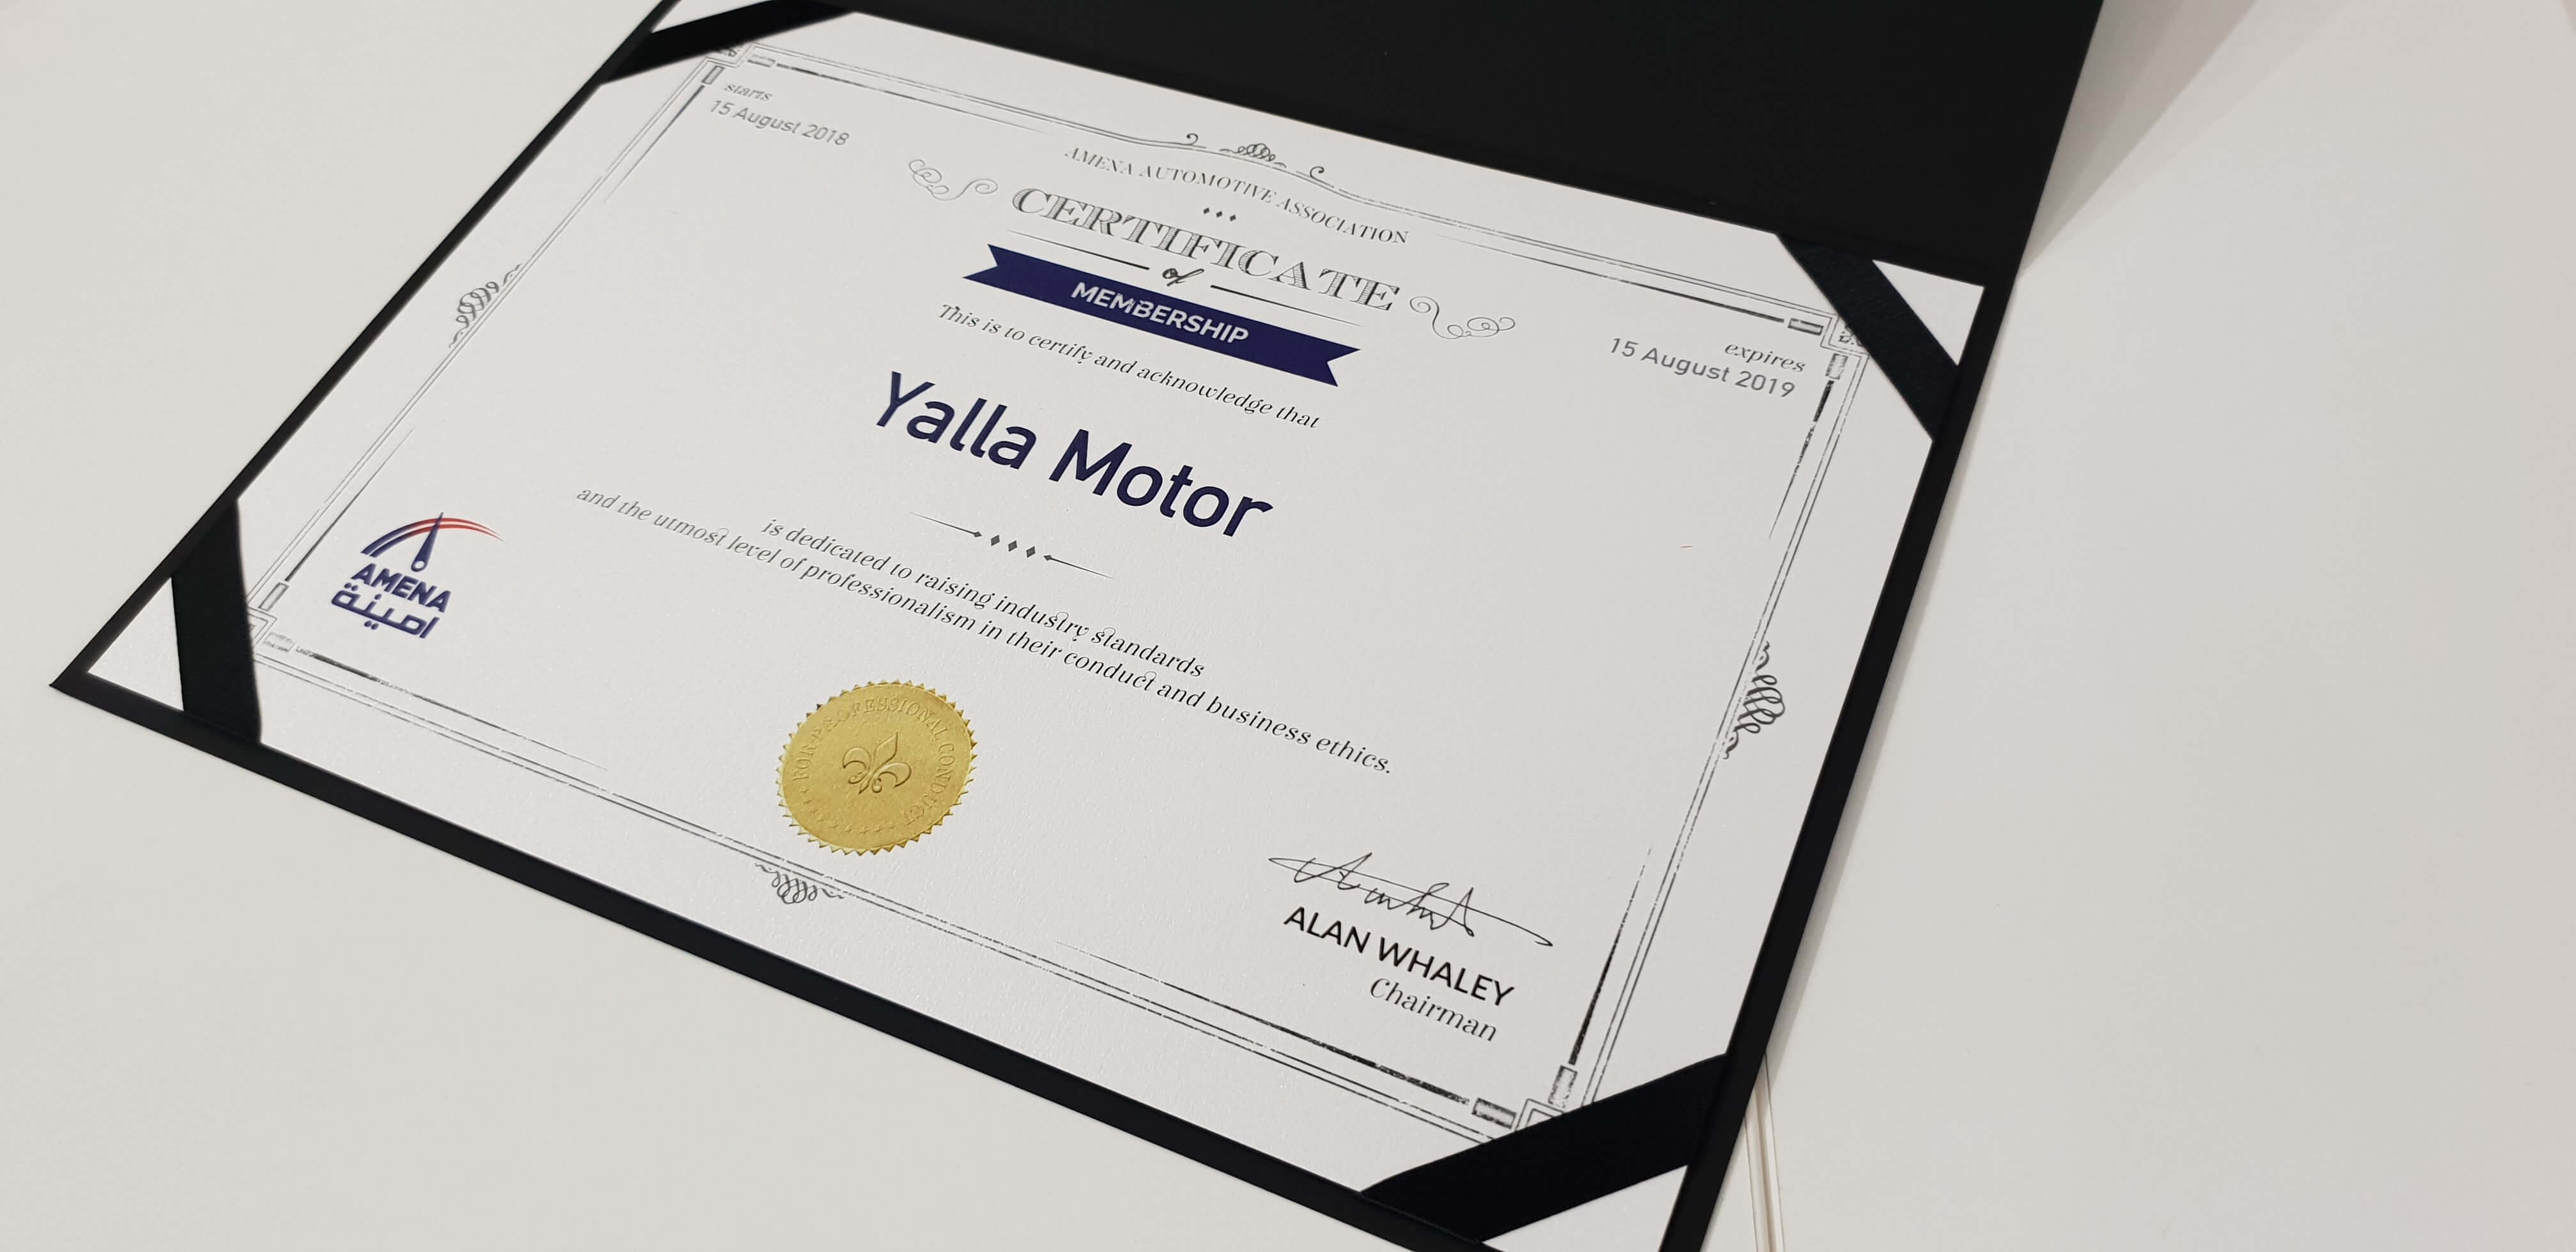 AMENA Auto and Yalla Motor Alliance Certificate